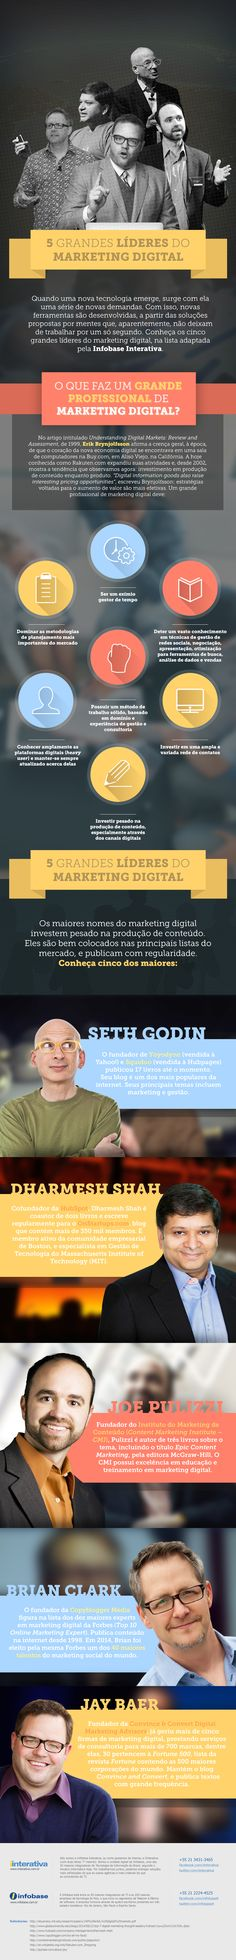 Líderes atuais do Marketing Digital